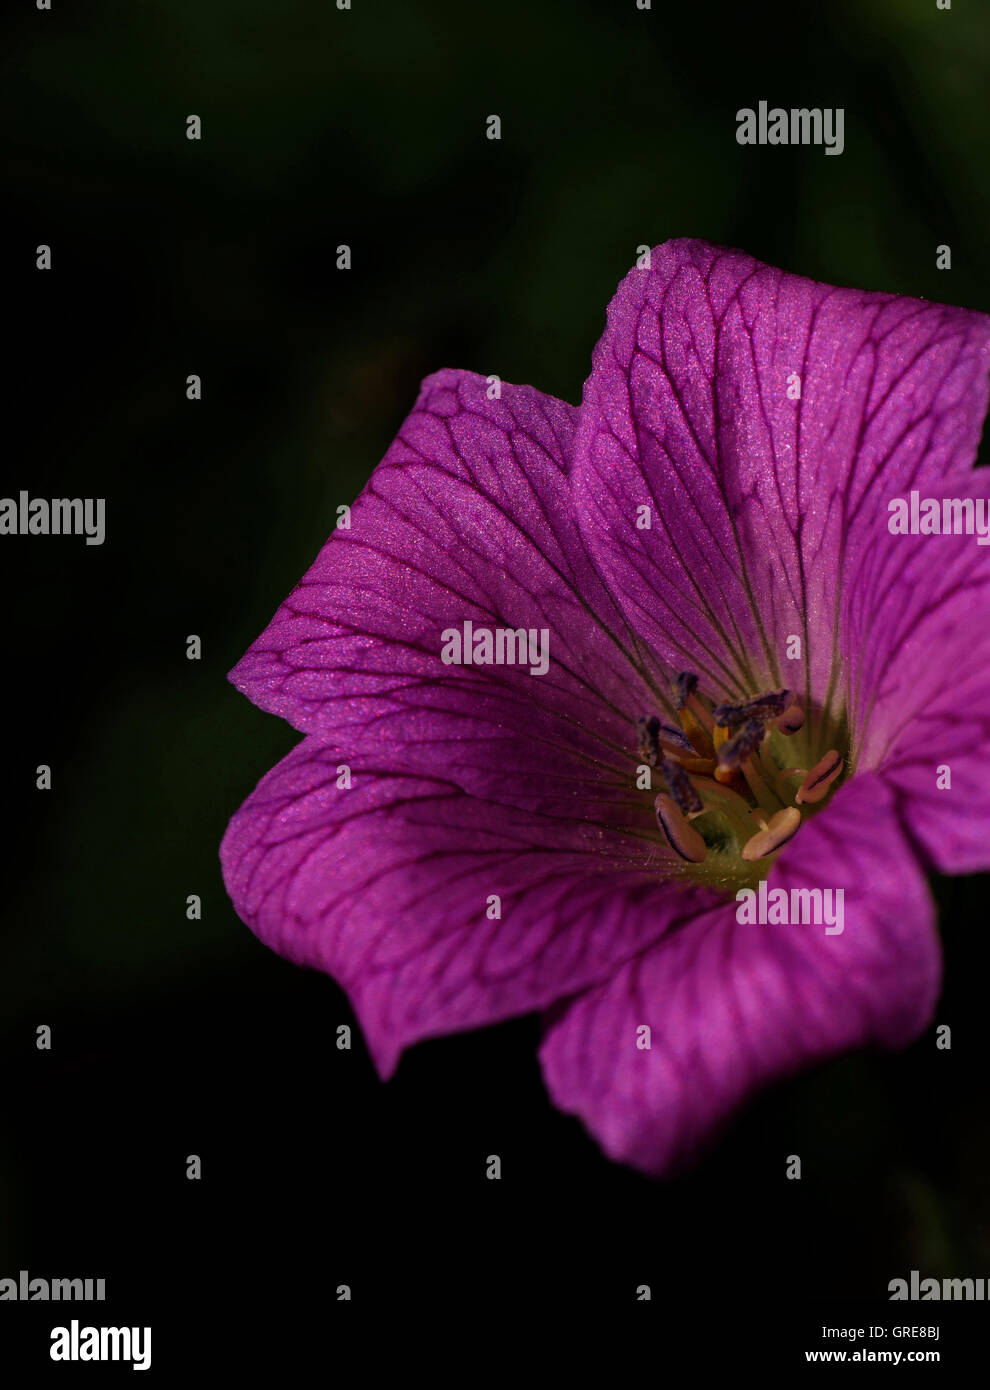 Cranesbill, Geranium With Dark Background, Abstract - Stock Image